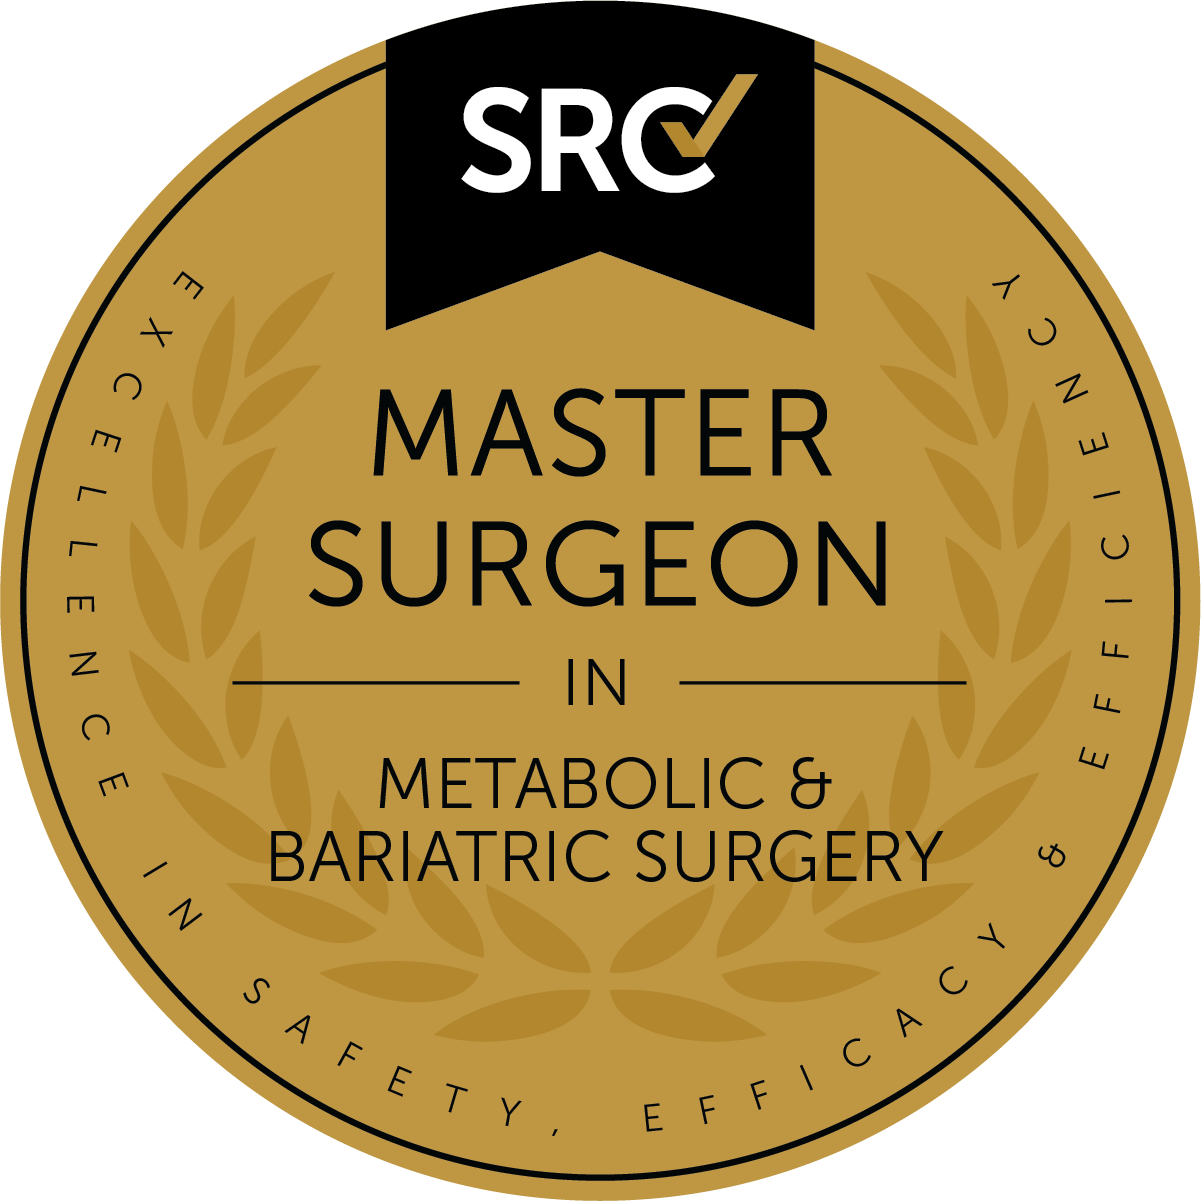 Master Surgeon In Metabolic & Bariatric Surgery